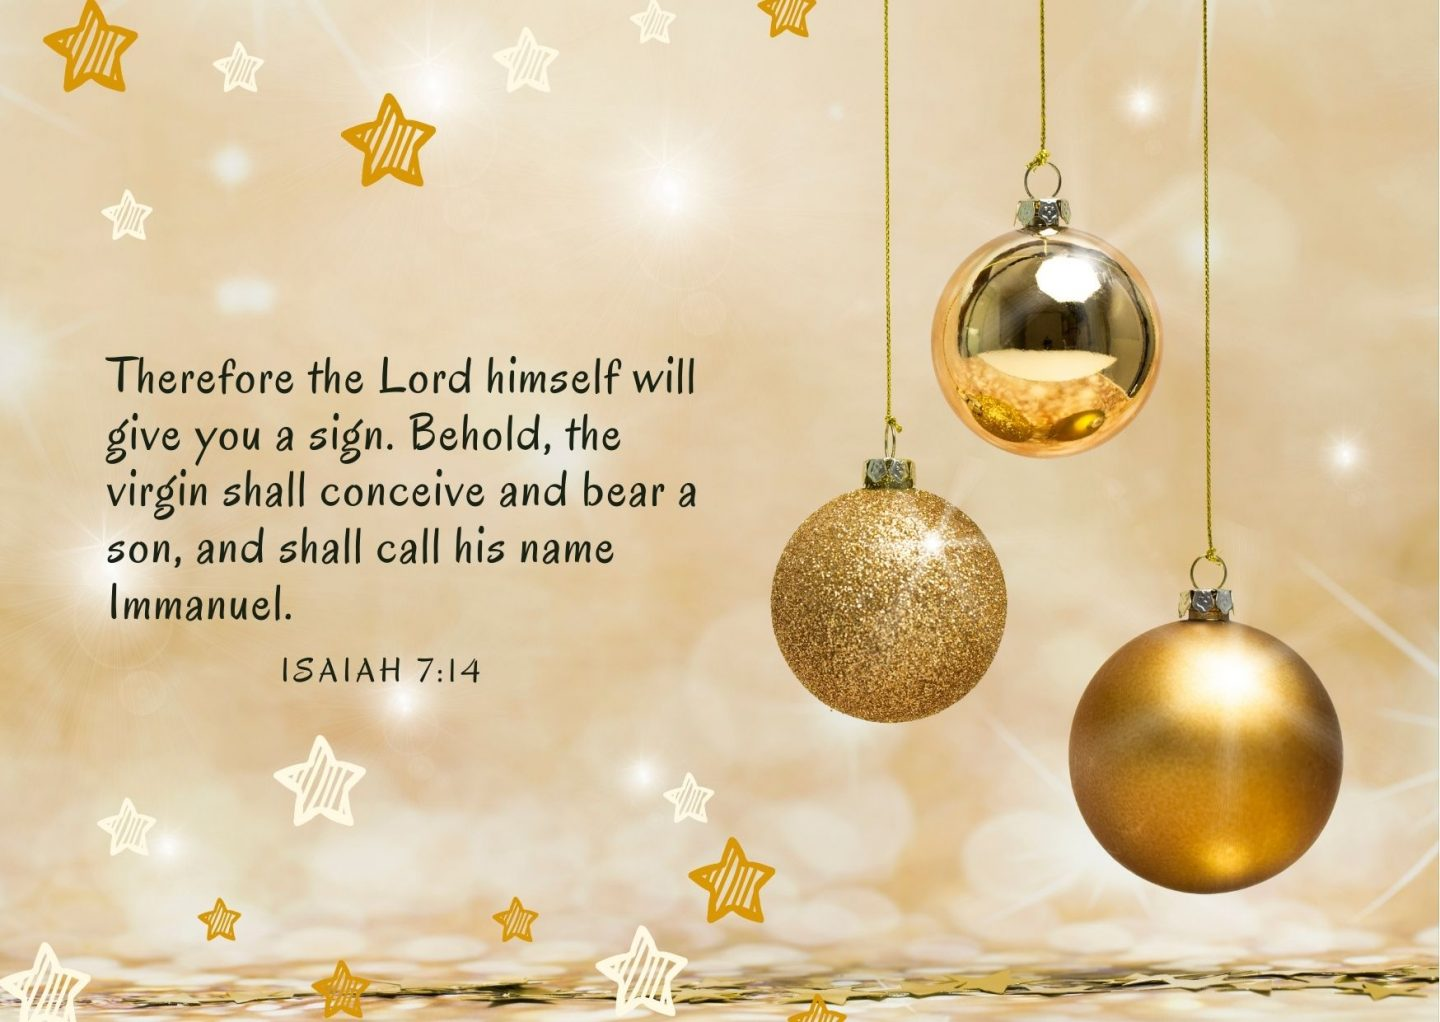 Therefore the Lord himself will give you a sign. Behold, the virgin shall conceive and bear a son, and shall call his name Immanuel Isaiah 7:14